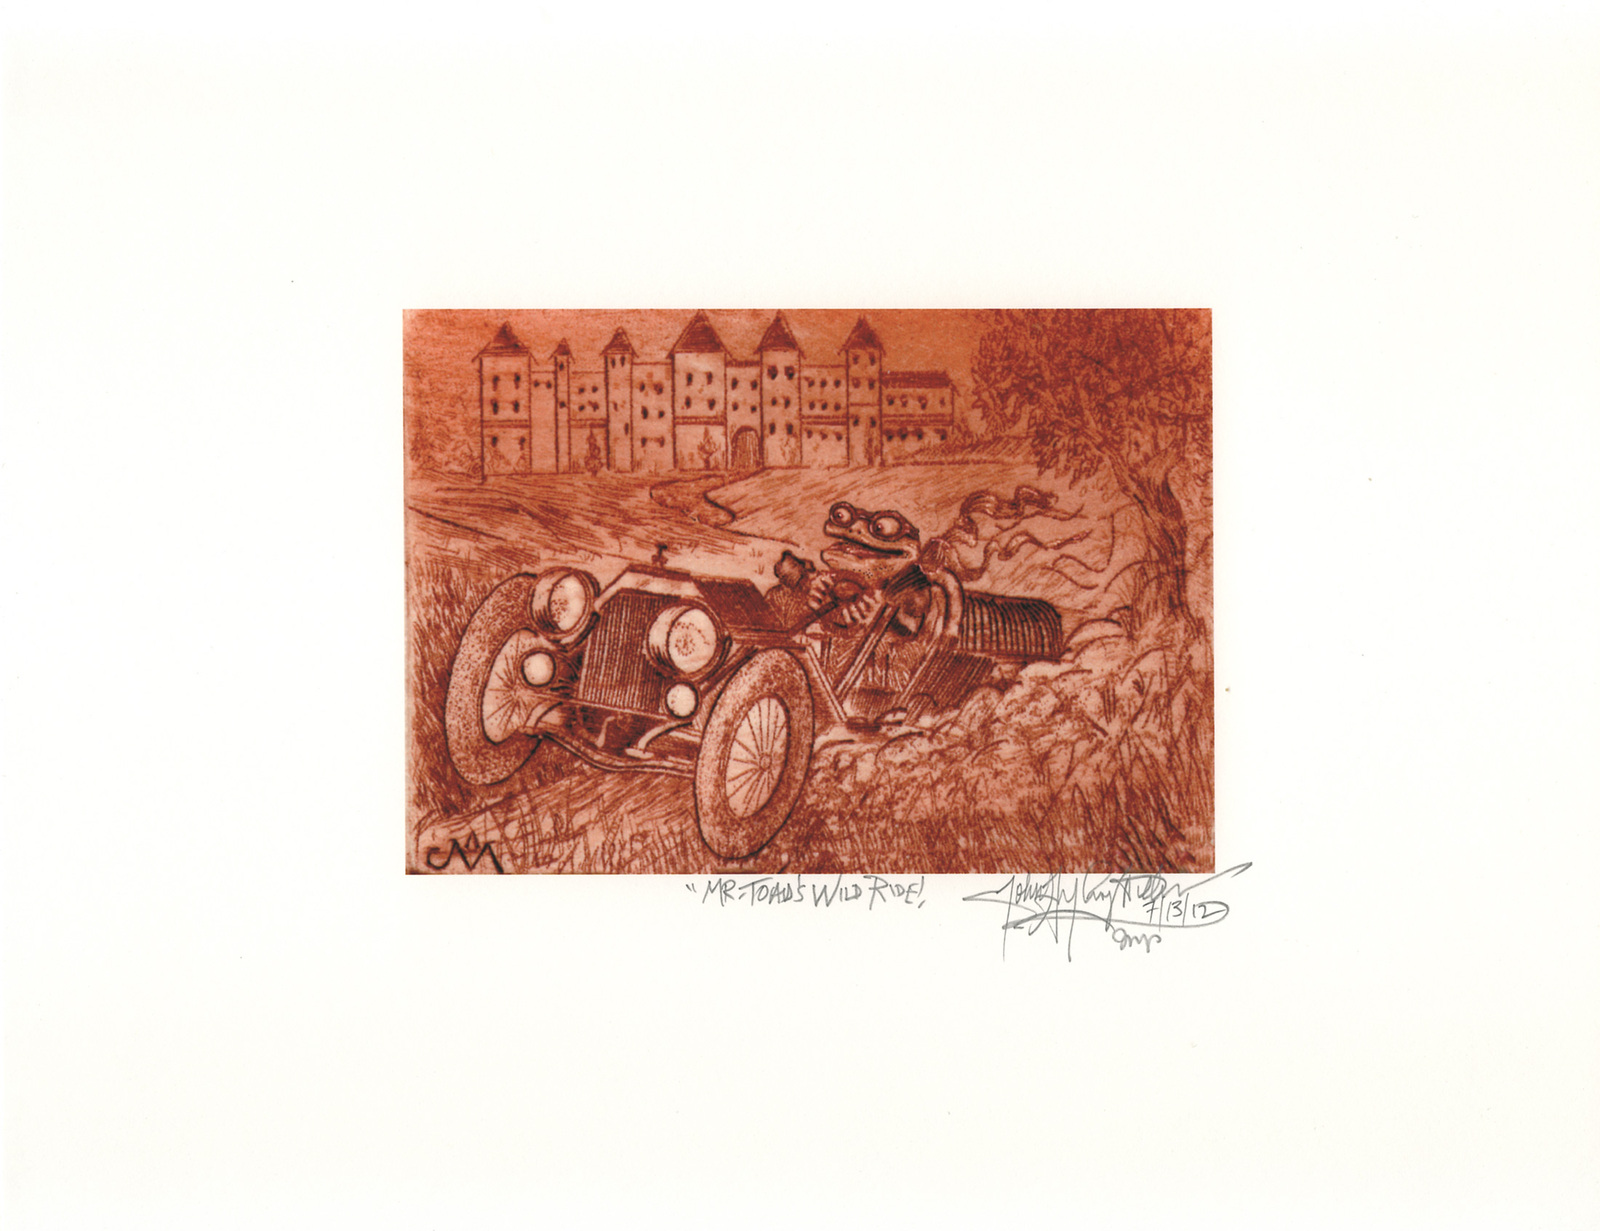 Mr. Toad's Wild Ride  -John Anthony Miller Giclee print (signed)